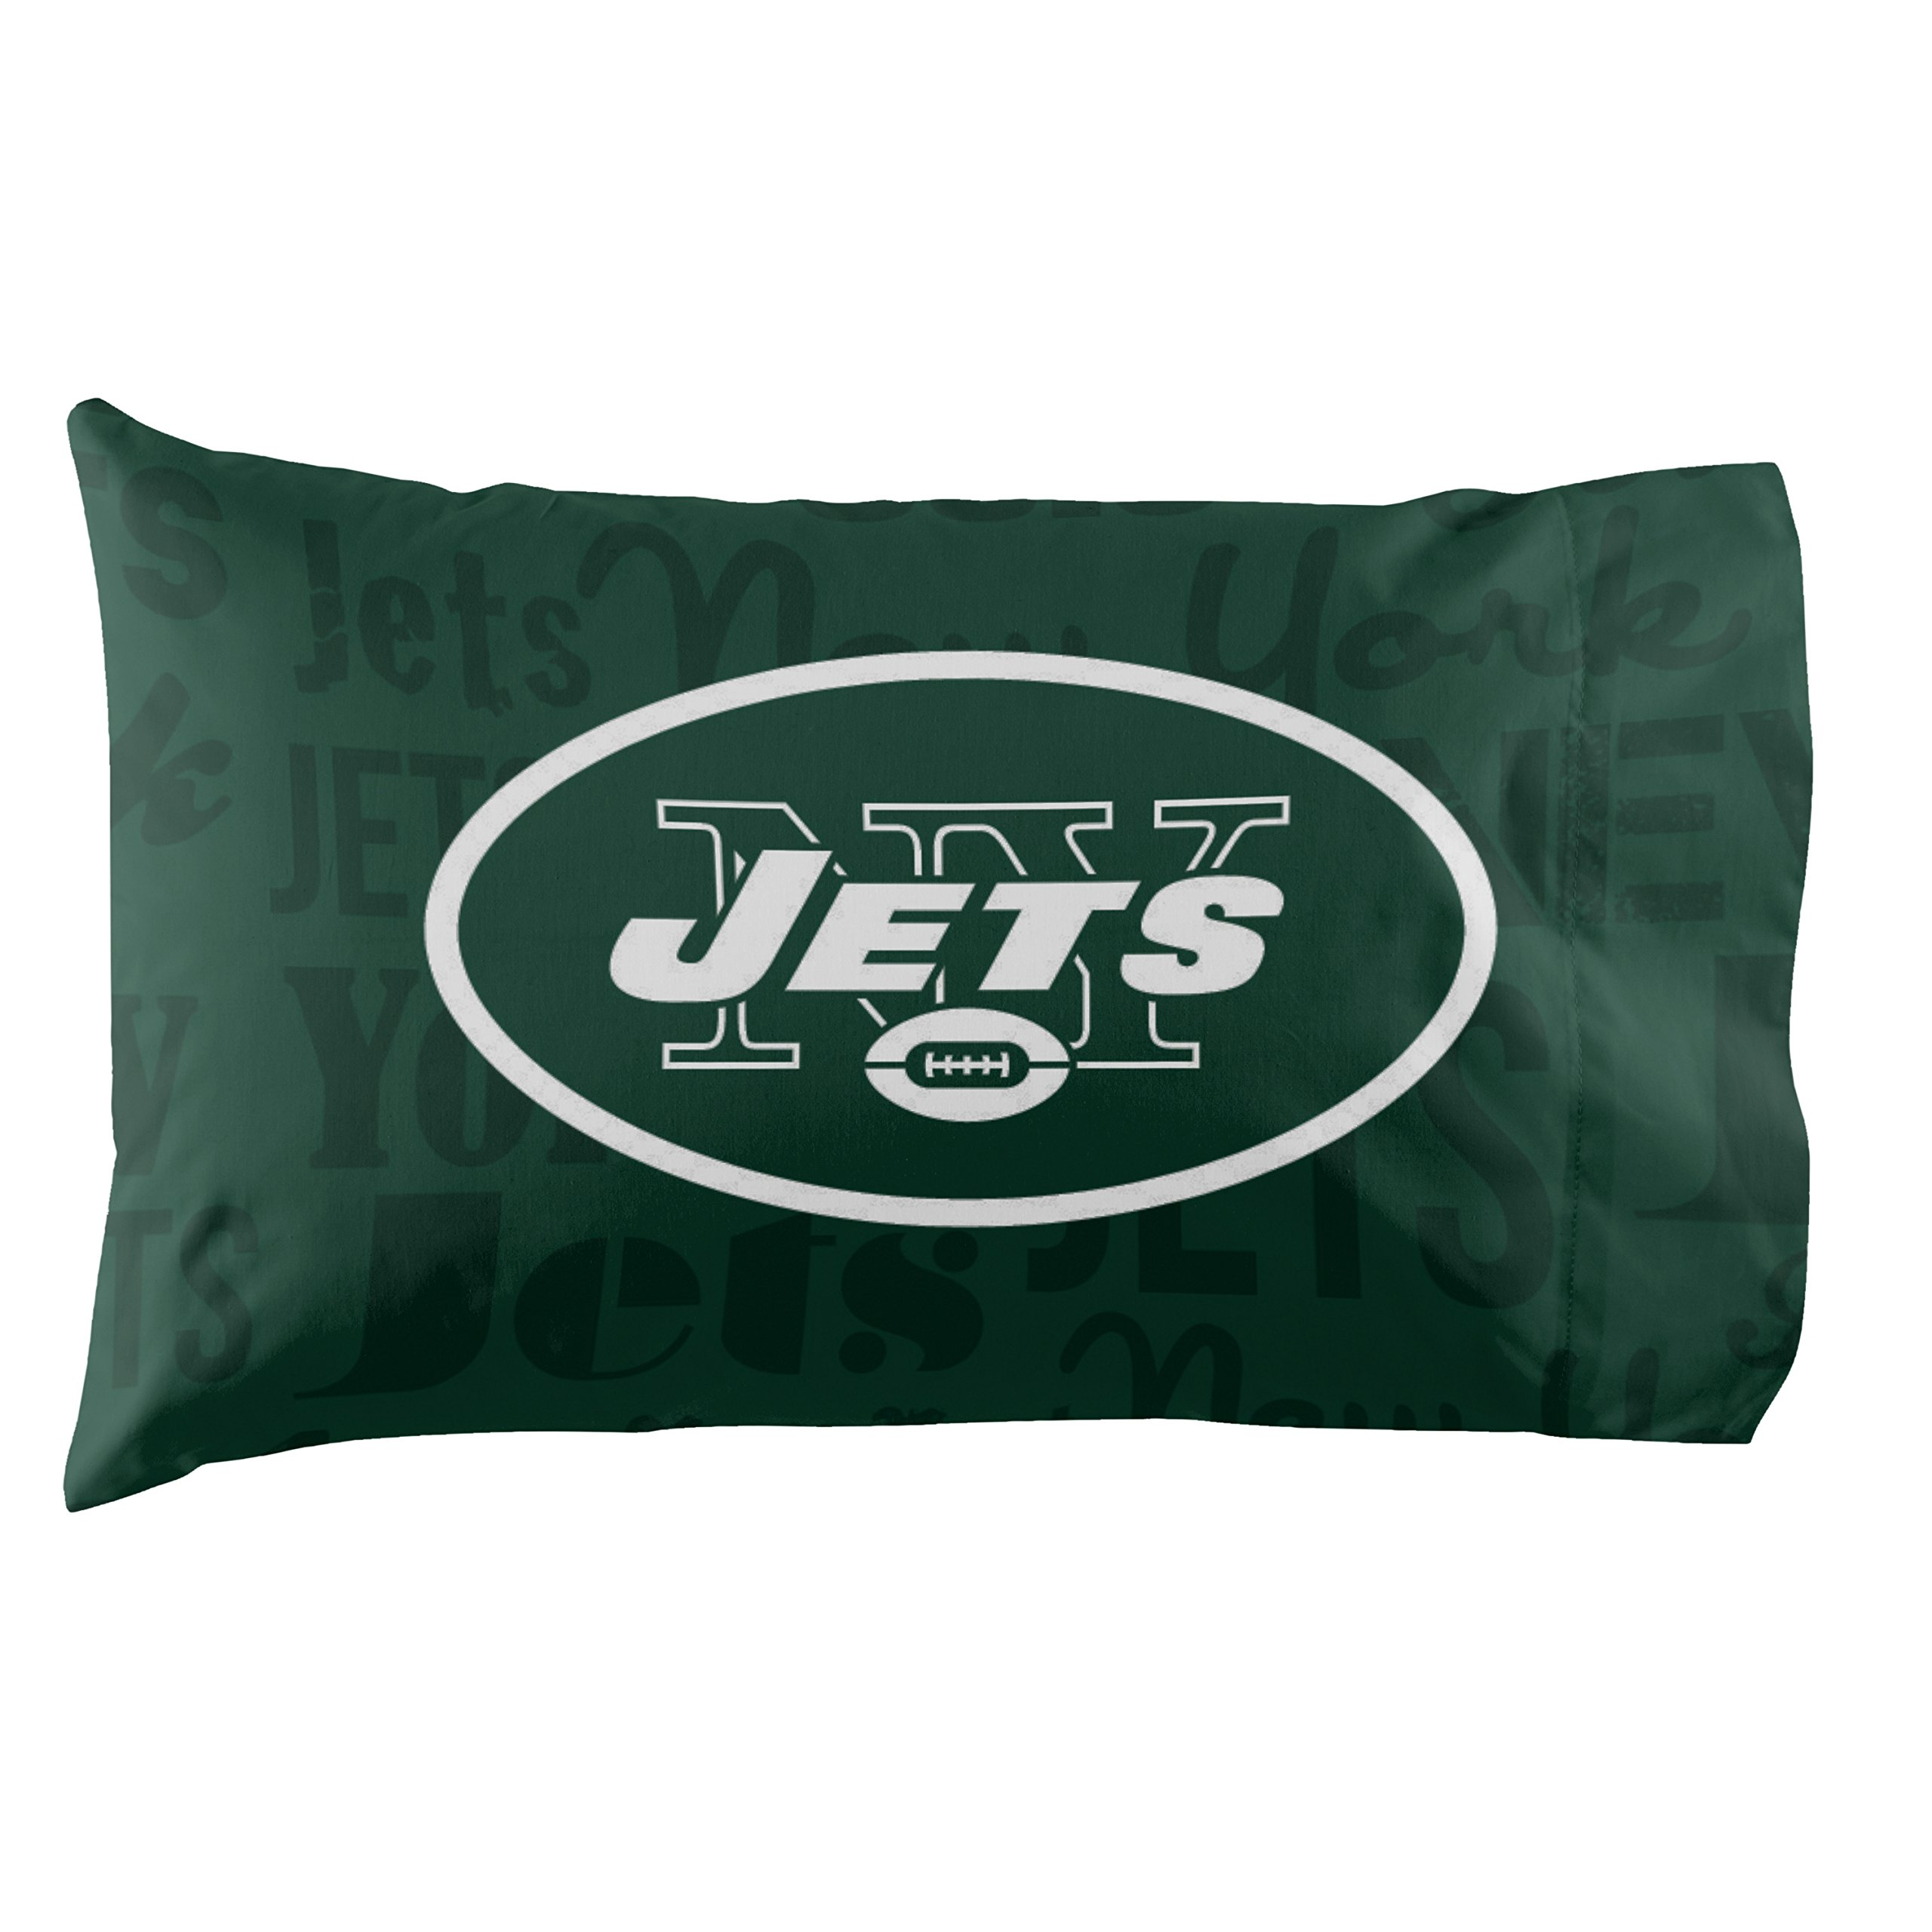 New York Jets - Set of 2 Pillowcases - NFL Football Bedroom Accessories by NW